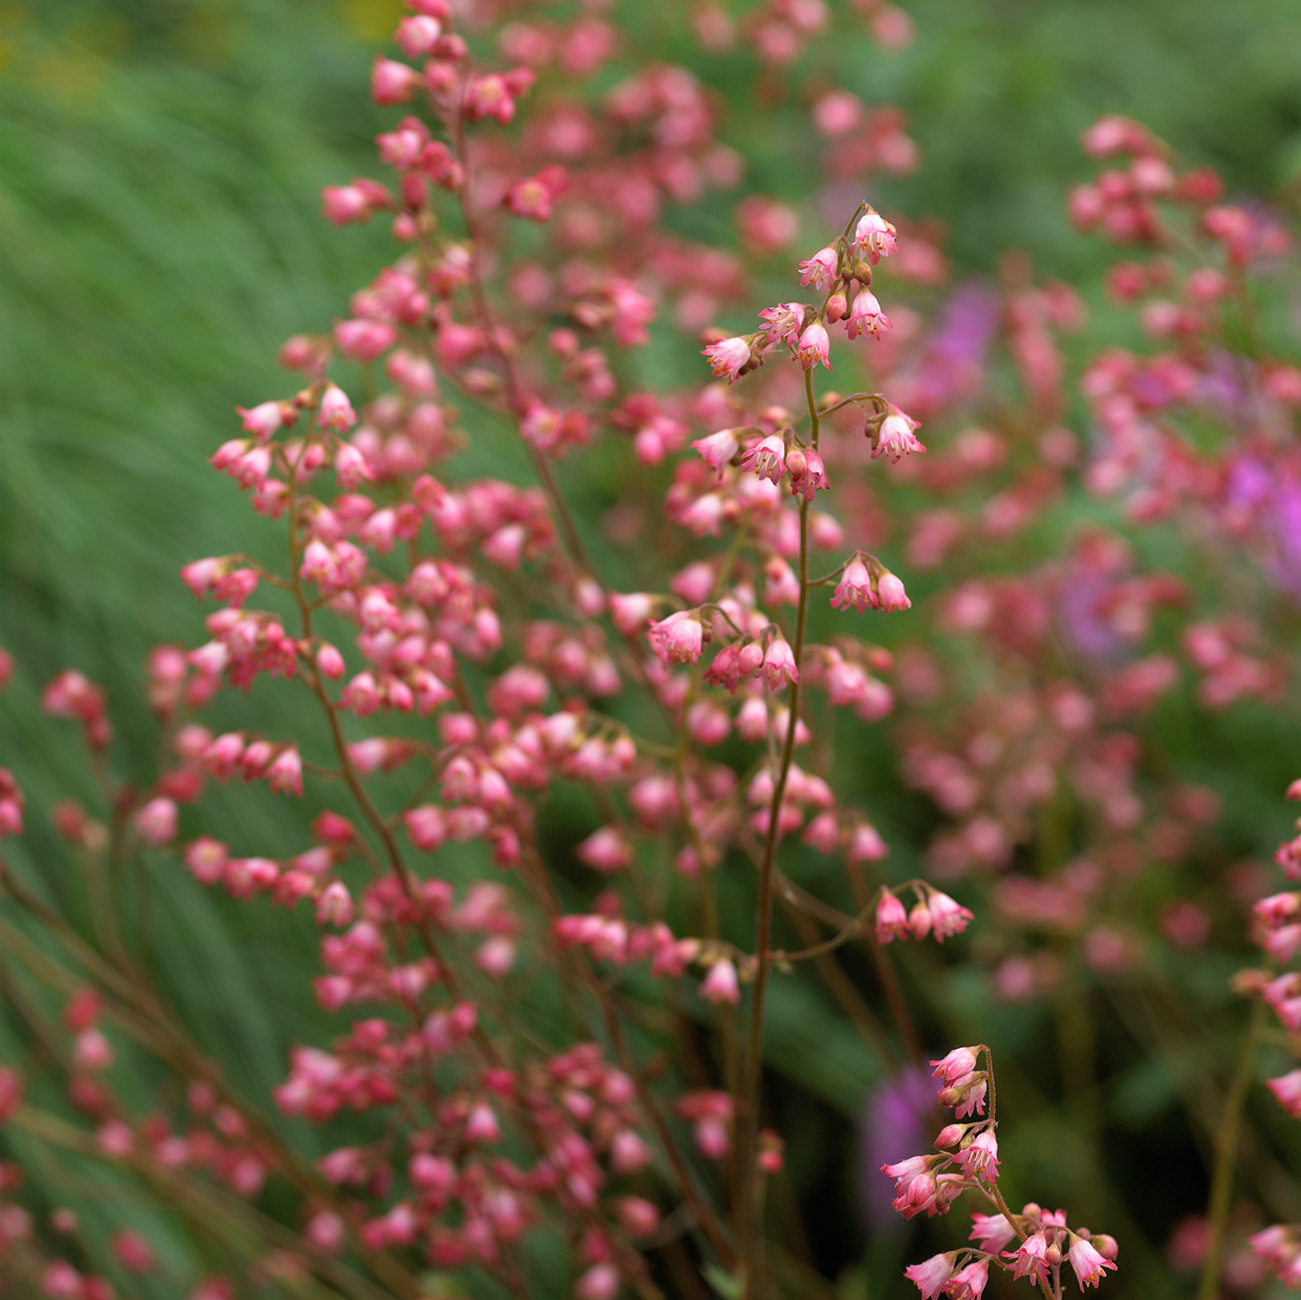 Flowers Similar To Lilies: The 18 Best Plants For Cottage Gardens